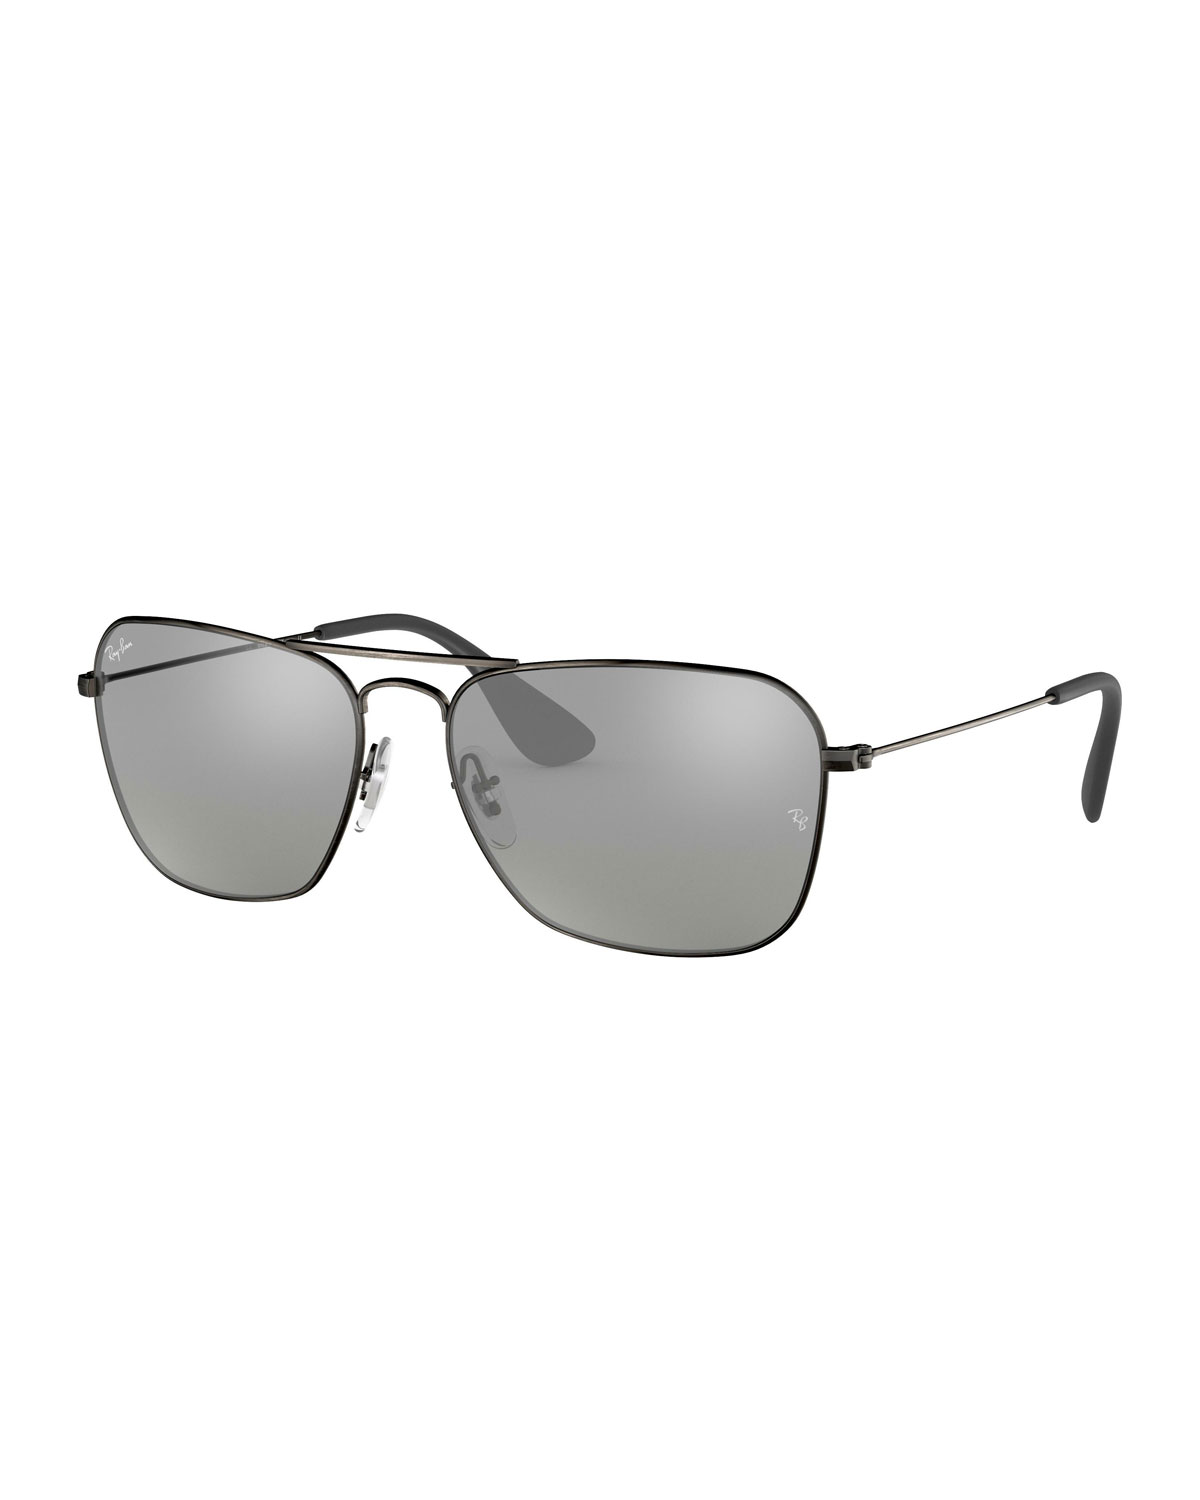 f97f6127a48e Ray-Ban Men's Rectangular Metal Sunglasses with Mirrored Lenses ...